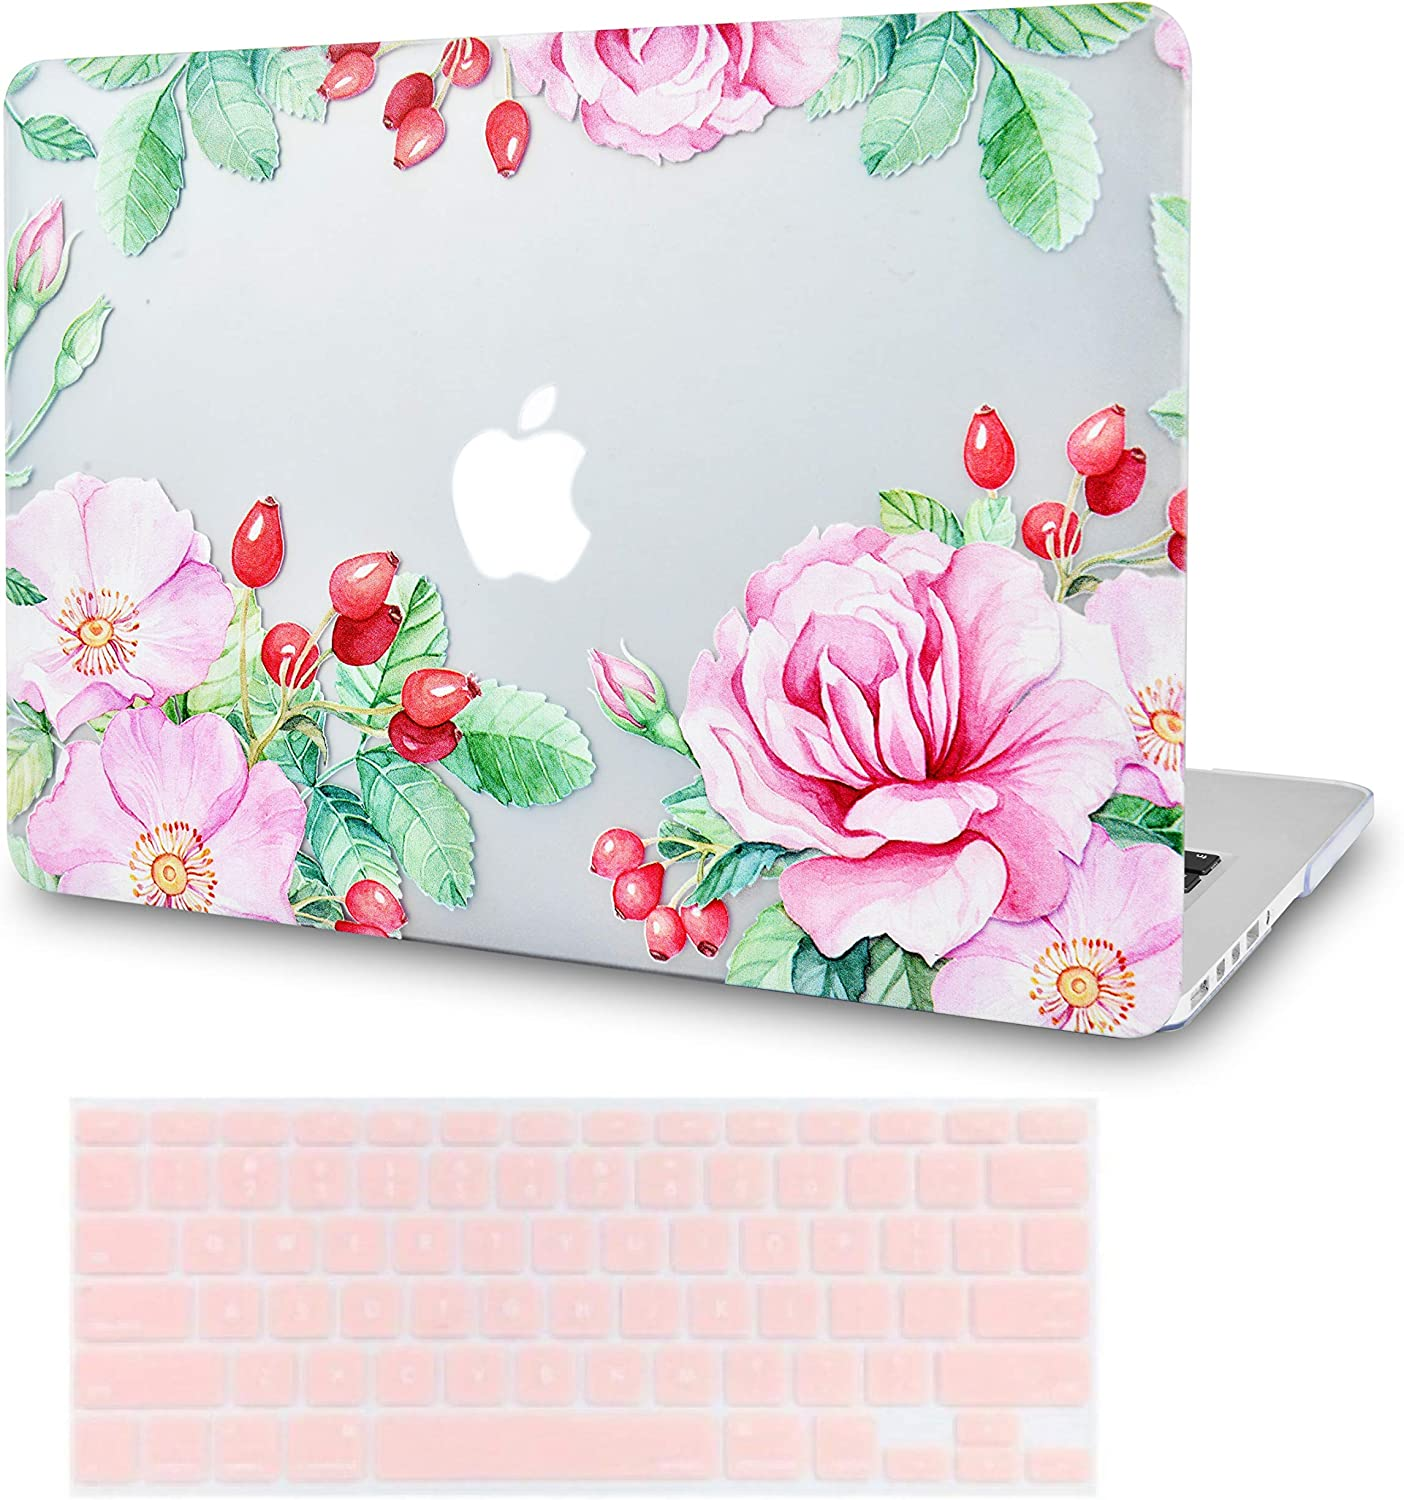 LuvCase2in1LaptopCaseforMacBookAir 13 Inch A1466/A1369 (No Touch ID)(2010-2017)RubberizedPlasticHardShellCover &KeyboardCover (Roses and Wild Fruit)